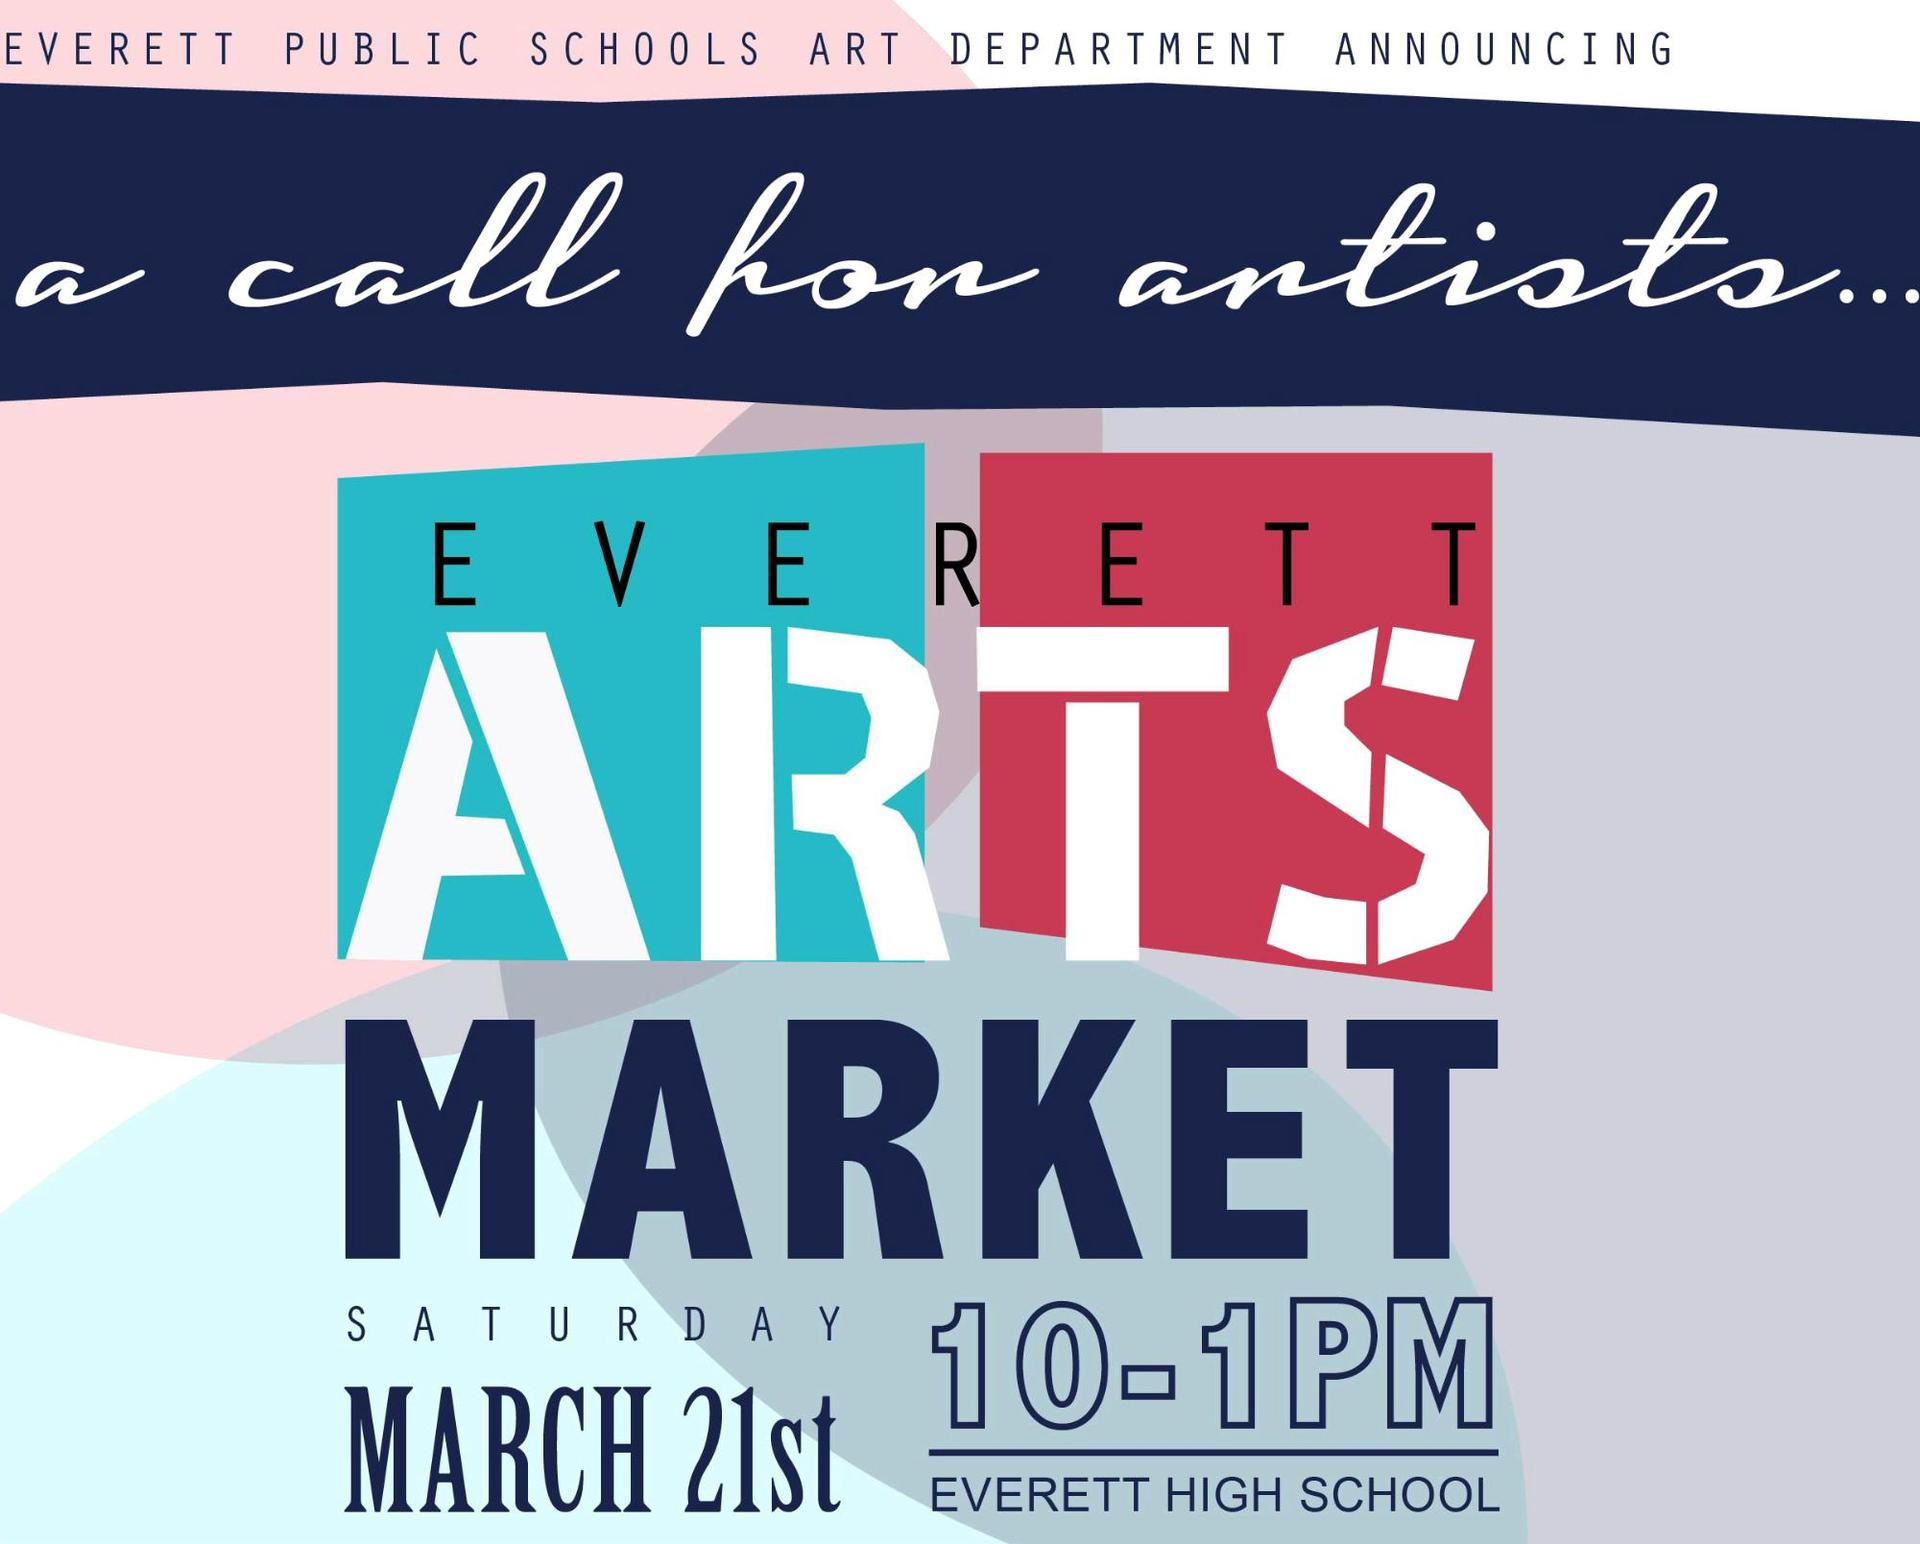 Arts Market logo all text with shaded color shapes as a backdrop